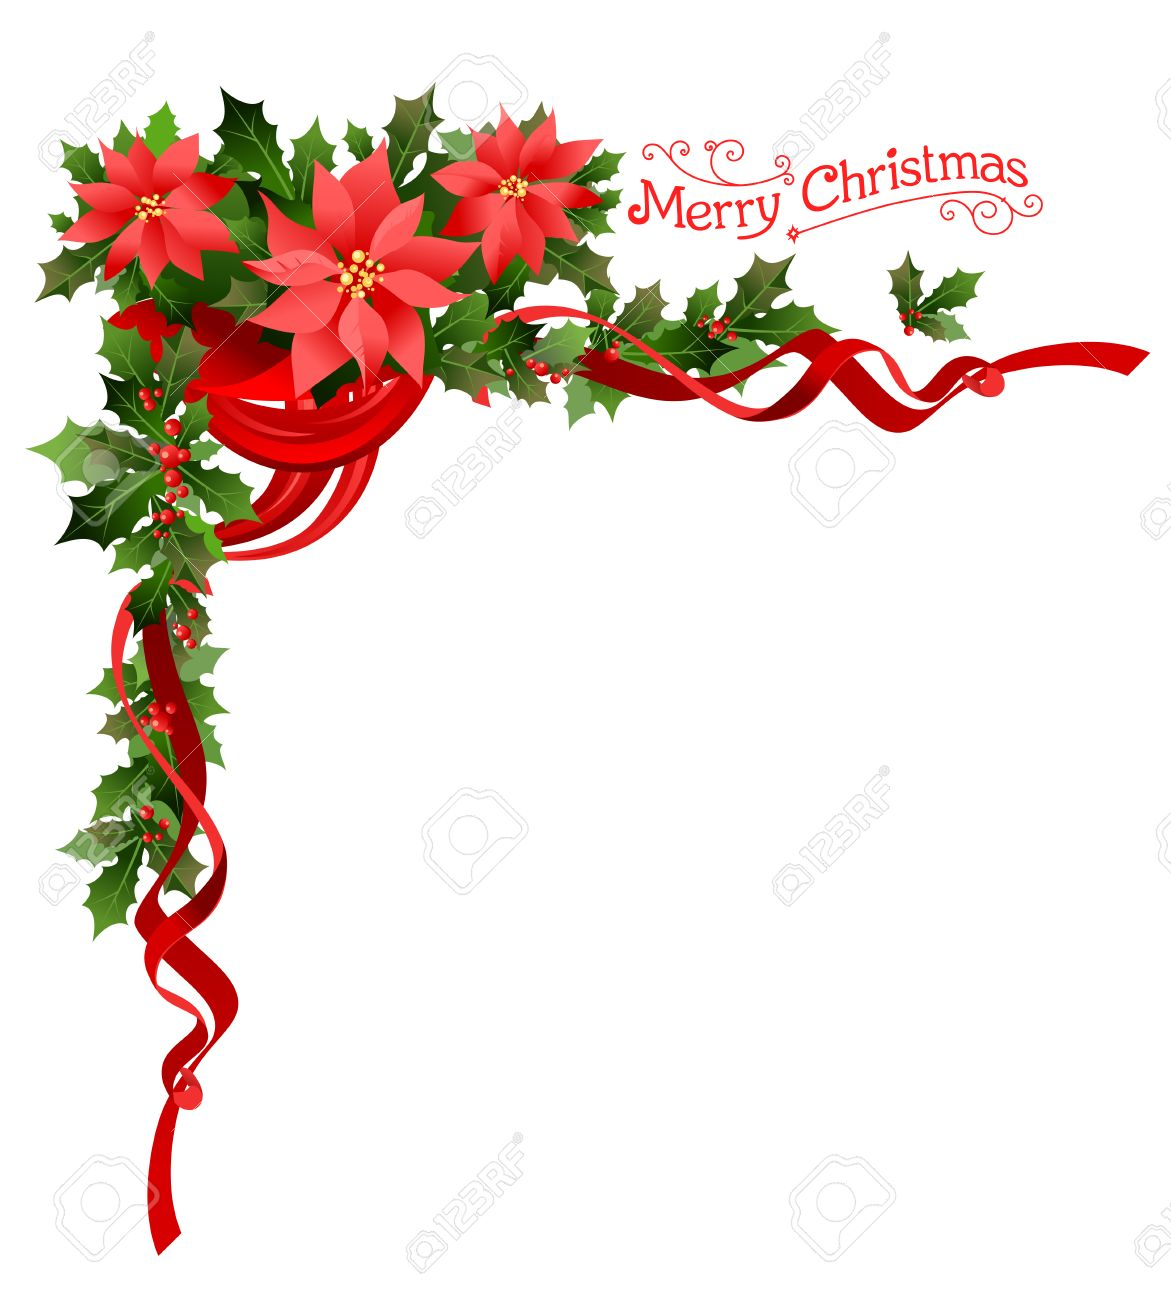 Poinsettia holiday corner. Holiday elements for design card, banner,ticket, leaflet and so on. - 49779587